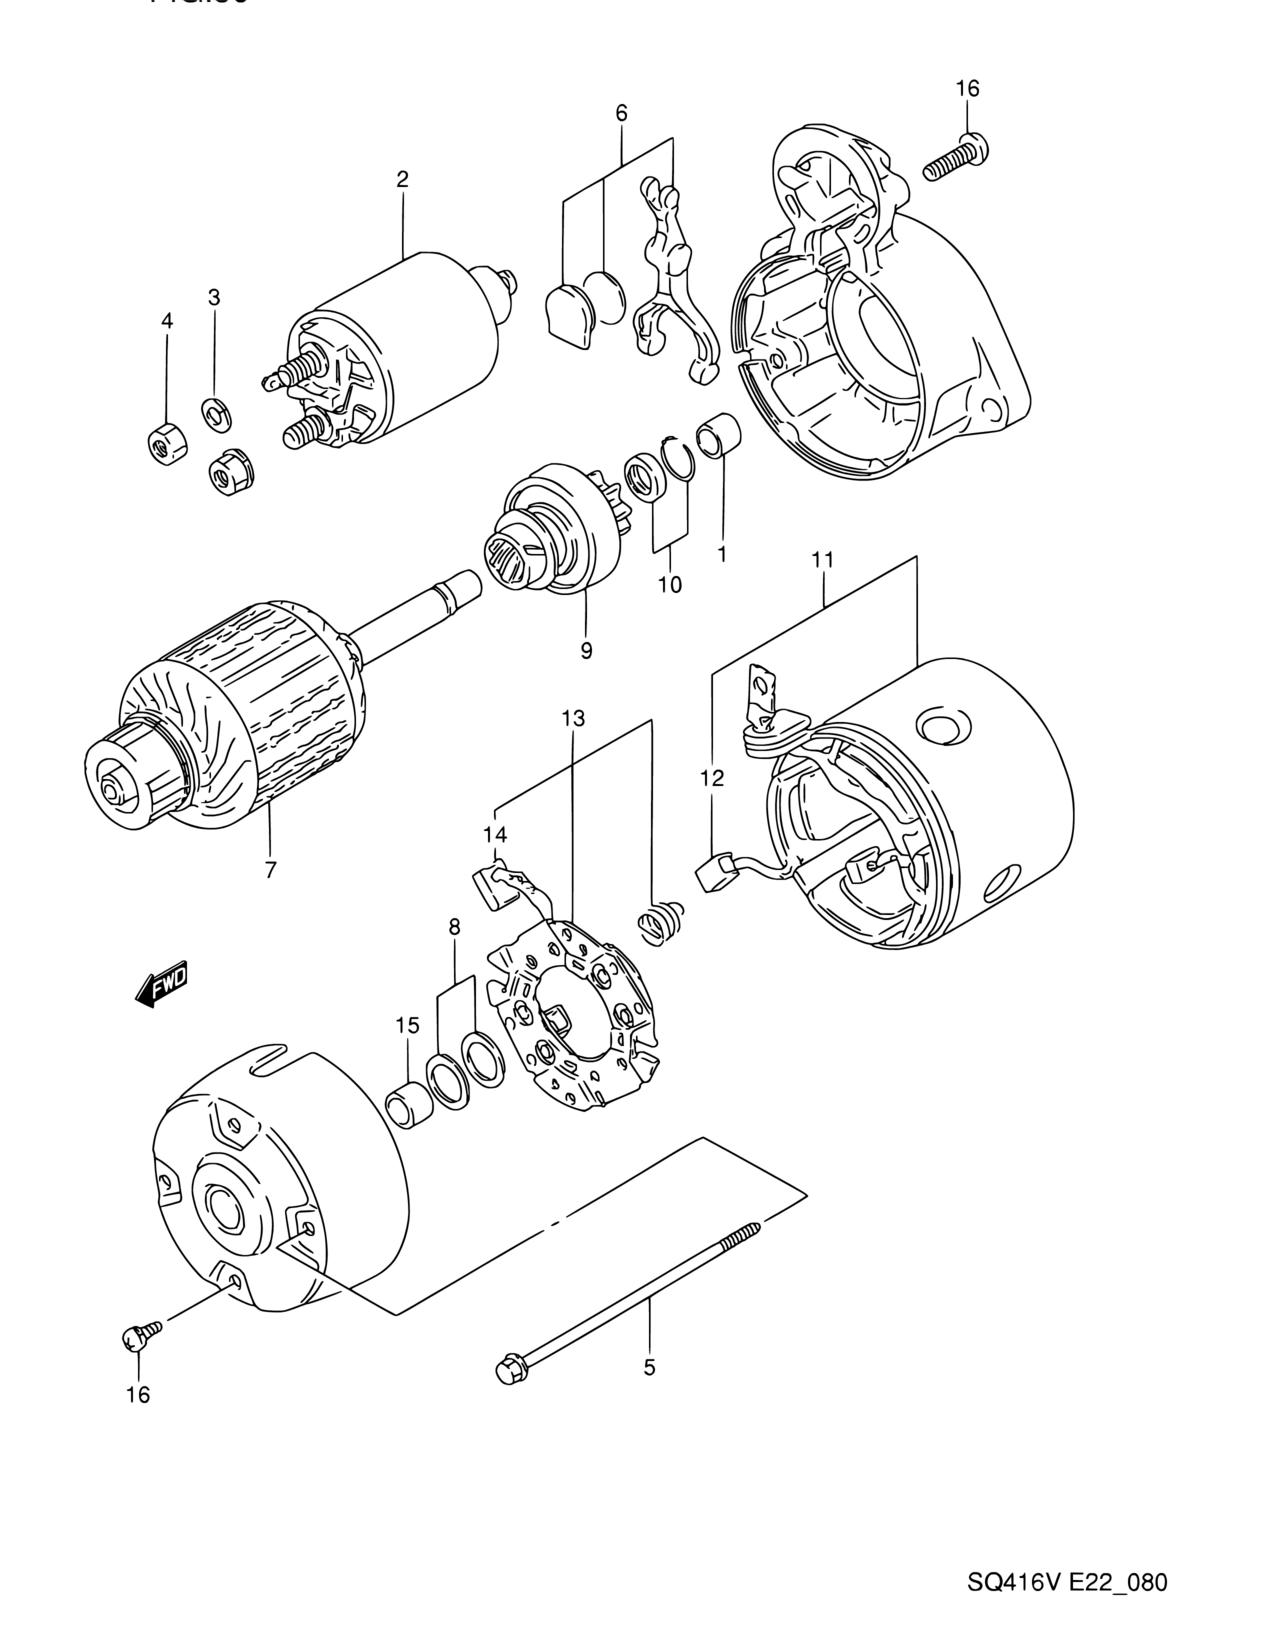 Africa Grand Vitara Sq420v Engine Electrical 80 Starting Motor Wire Diagrams Name Plate Code Part Number Additional Information Qty